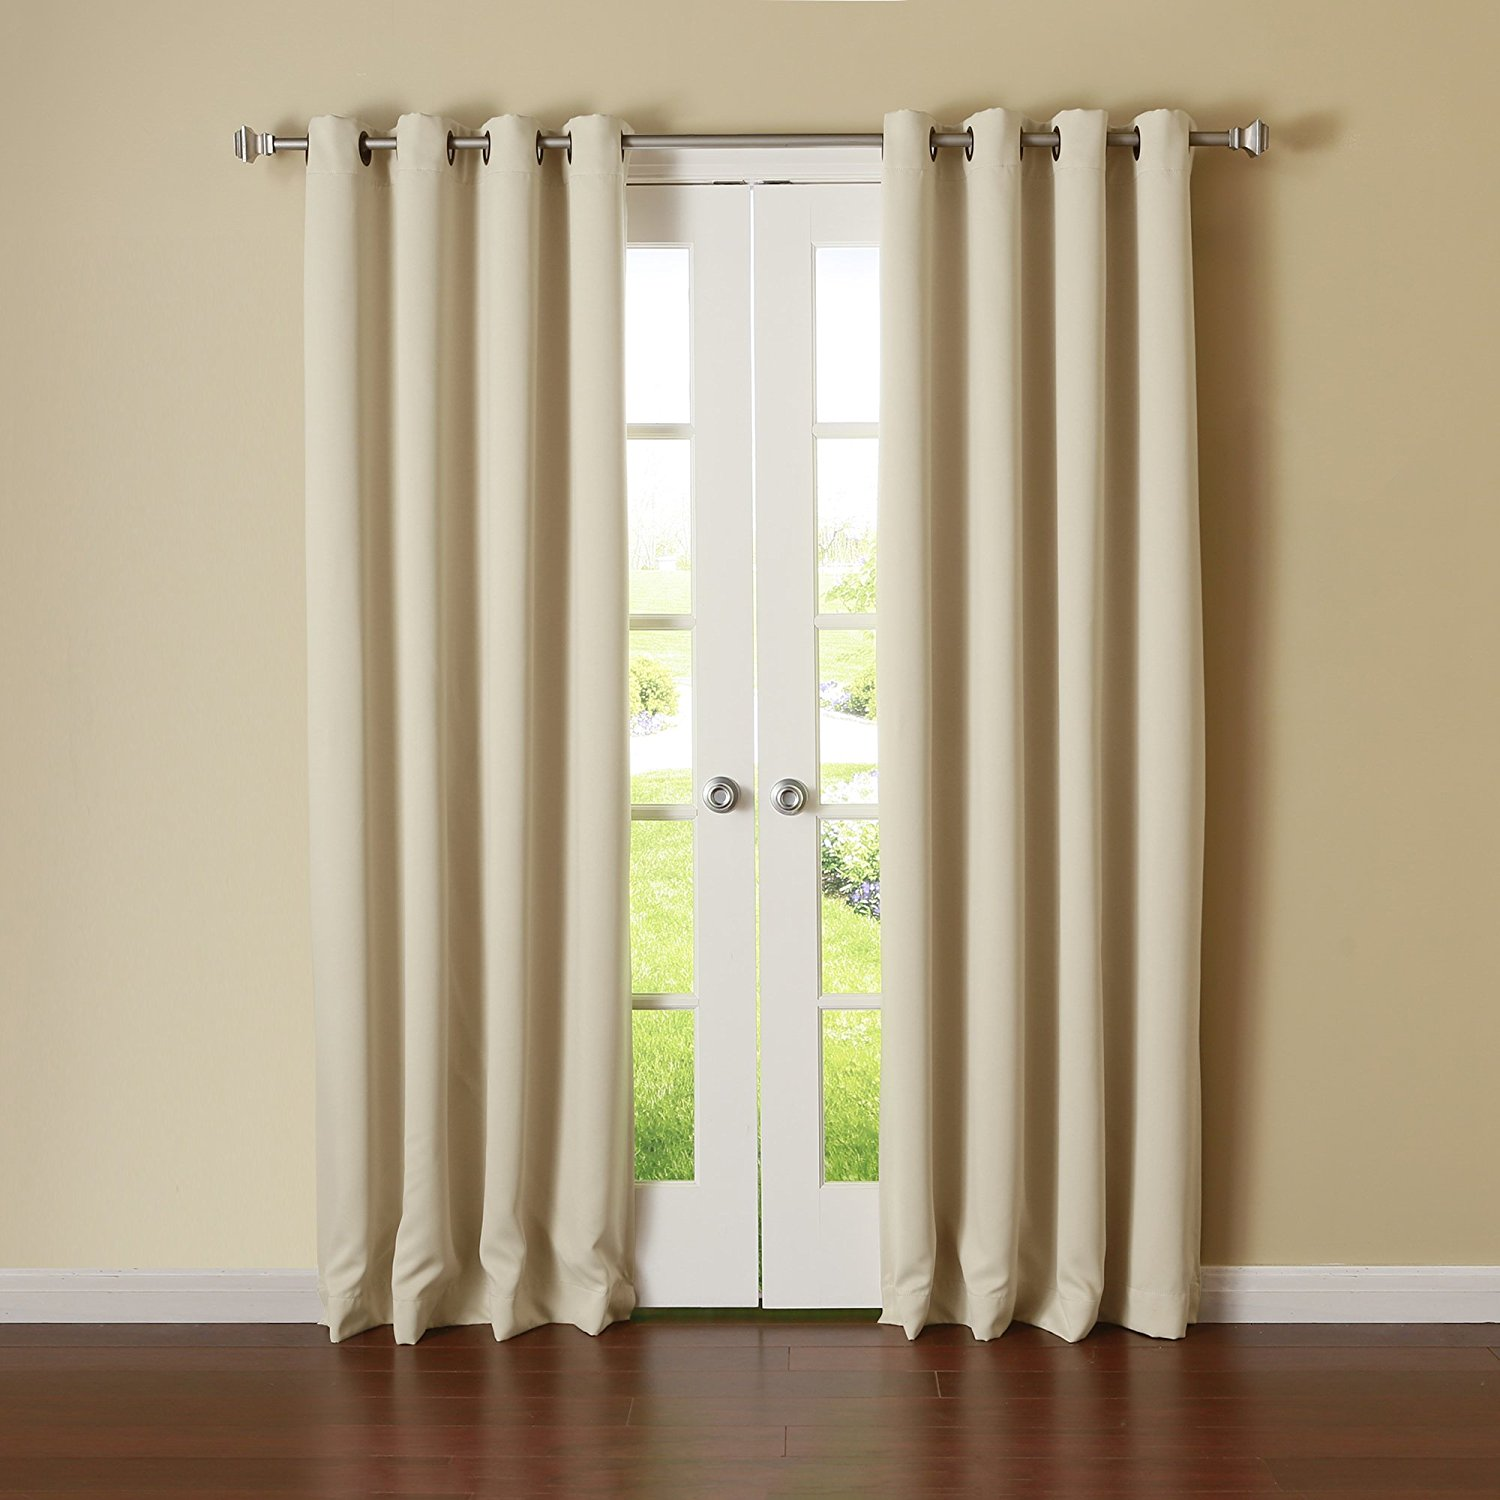 sears bedroom curtains. blackout cloth walmart | overstock curtains soundproof target sears bedroom